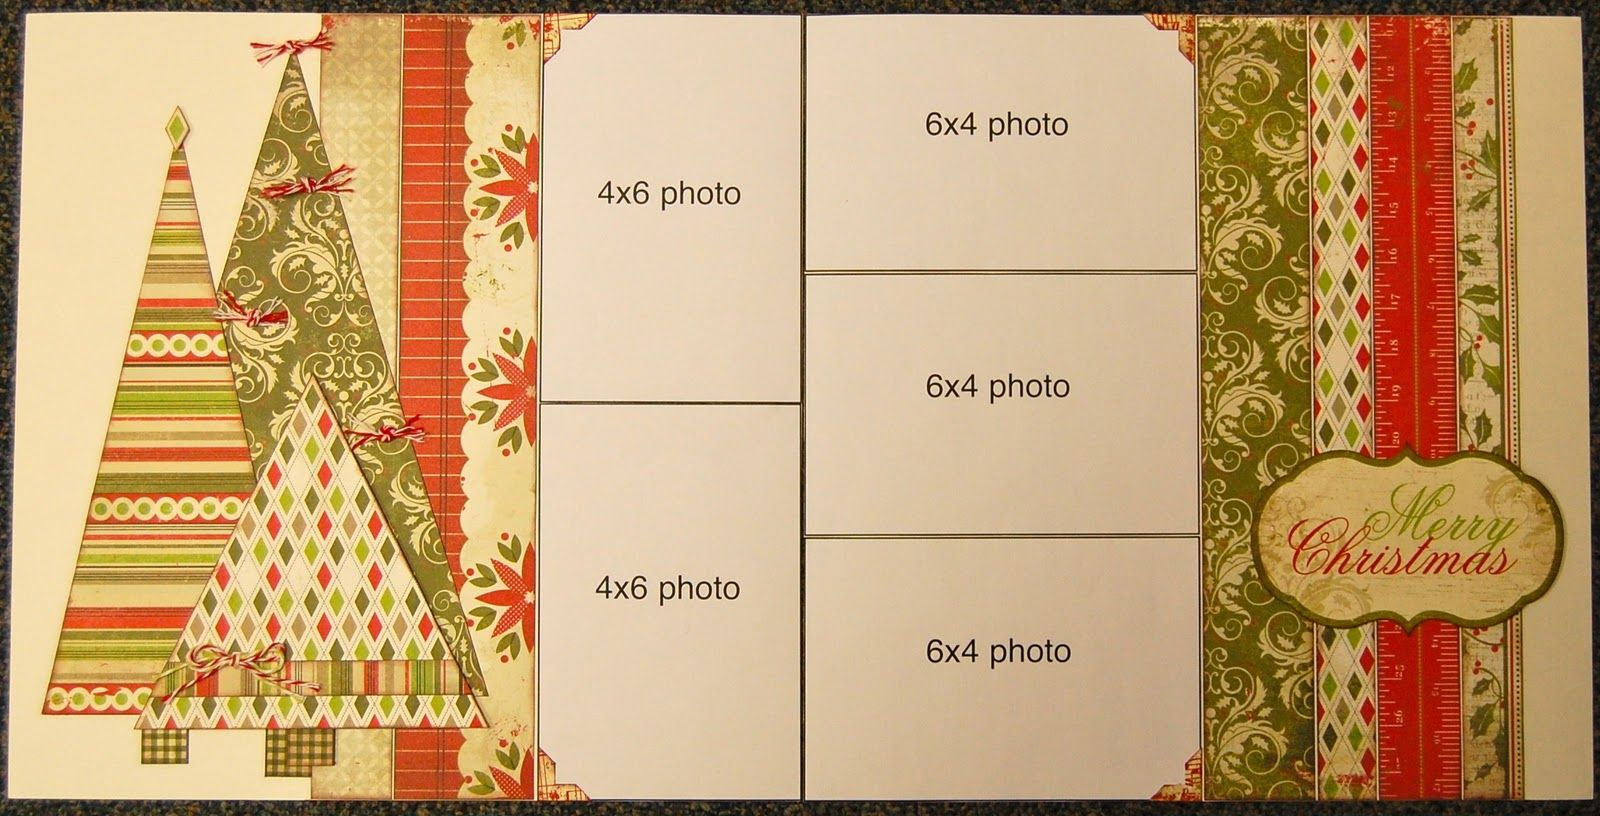 10 Fashionable 2 Page Scrapbook Layout Ideas 24 inspired photo of scrapbooking layouts ideas 2 page 1 2021